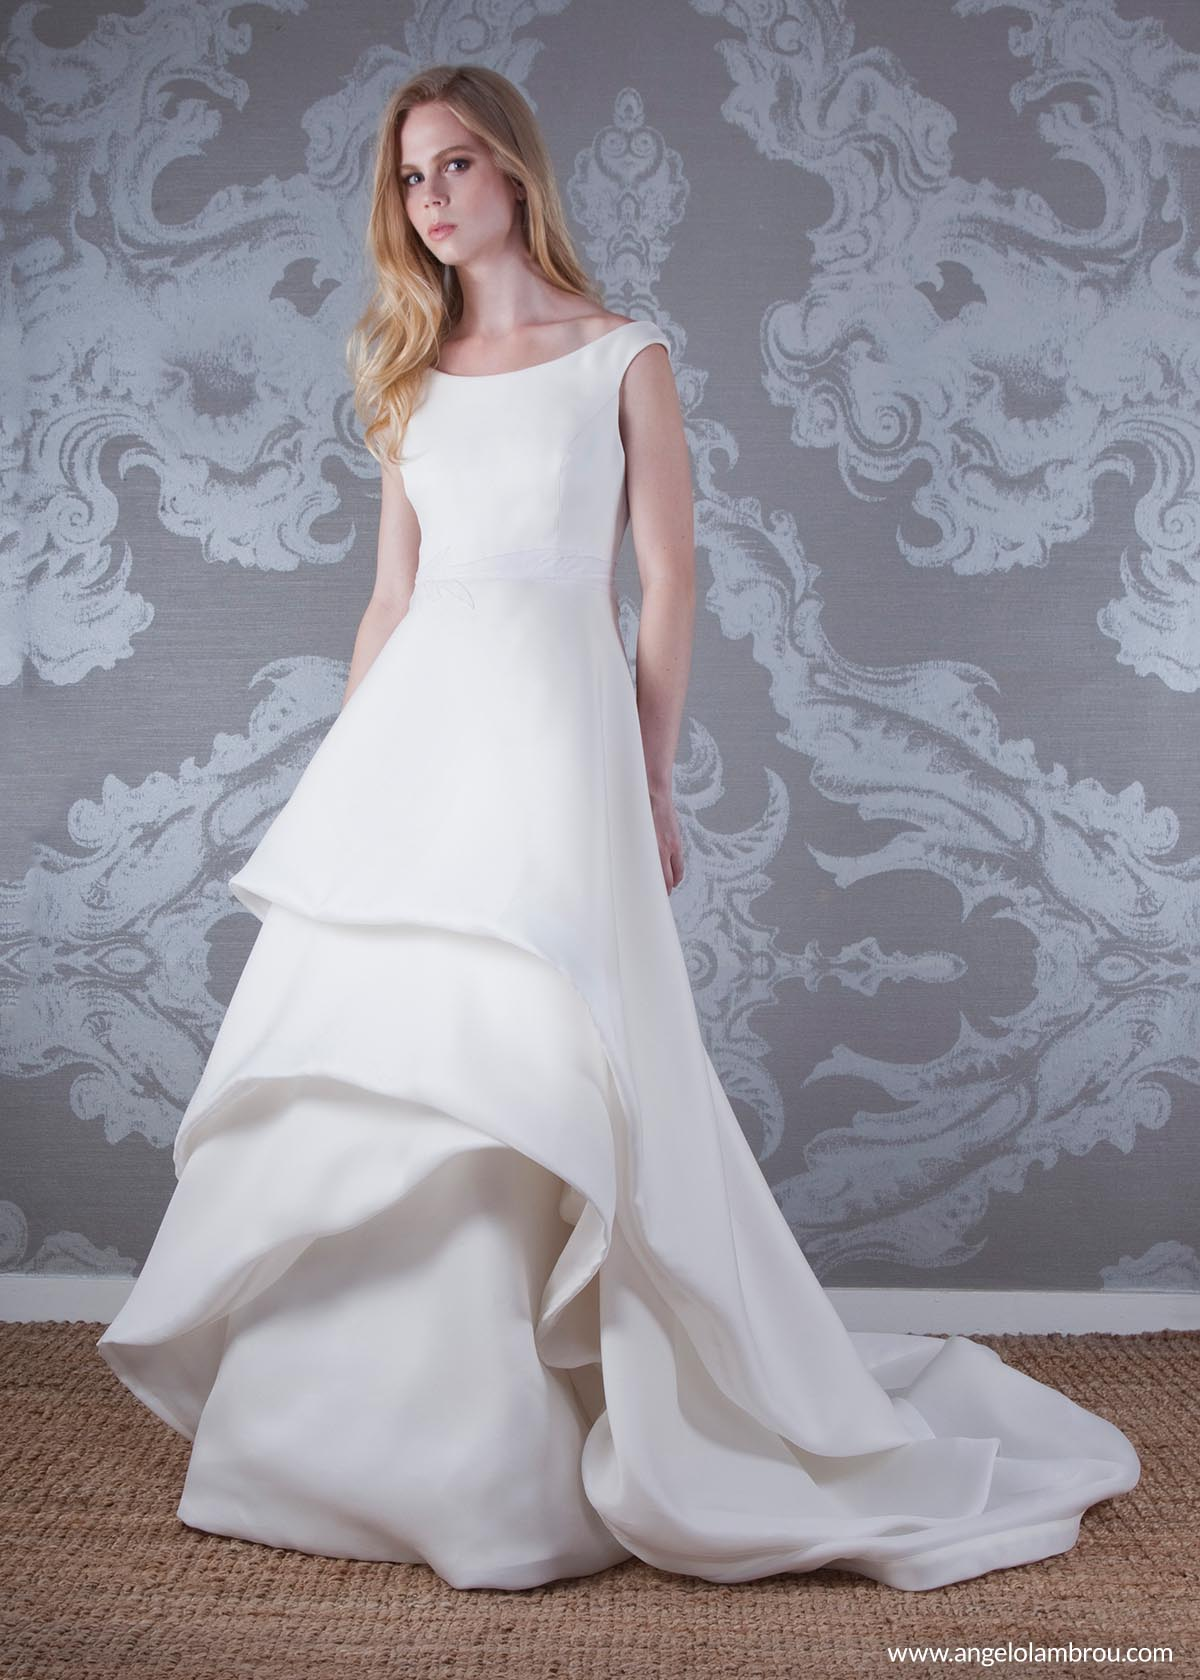 Angelo Lambrou Atelier – New York NY Couture Wedding Dresses ...